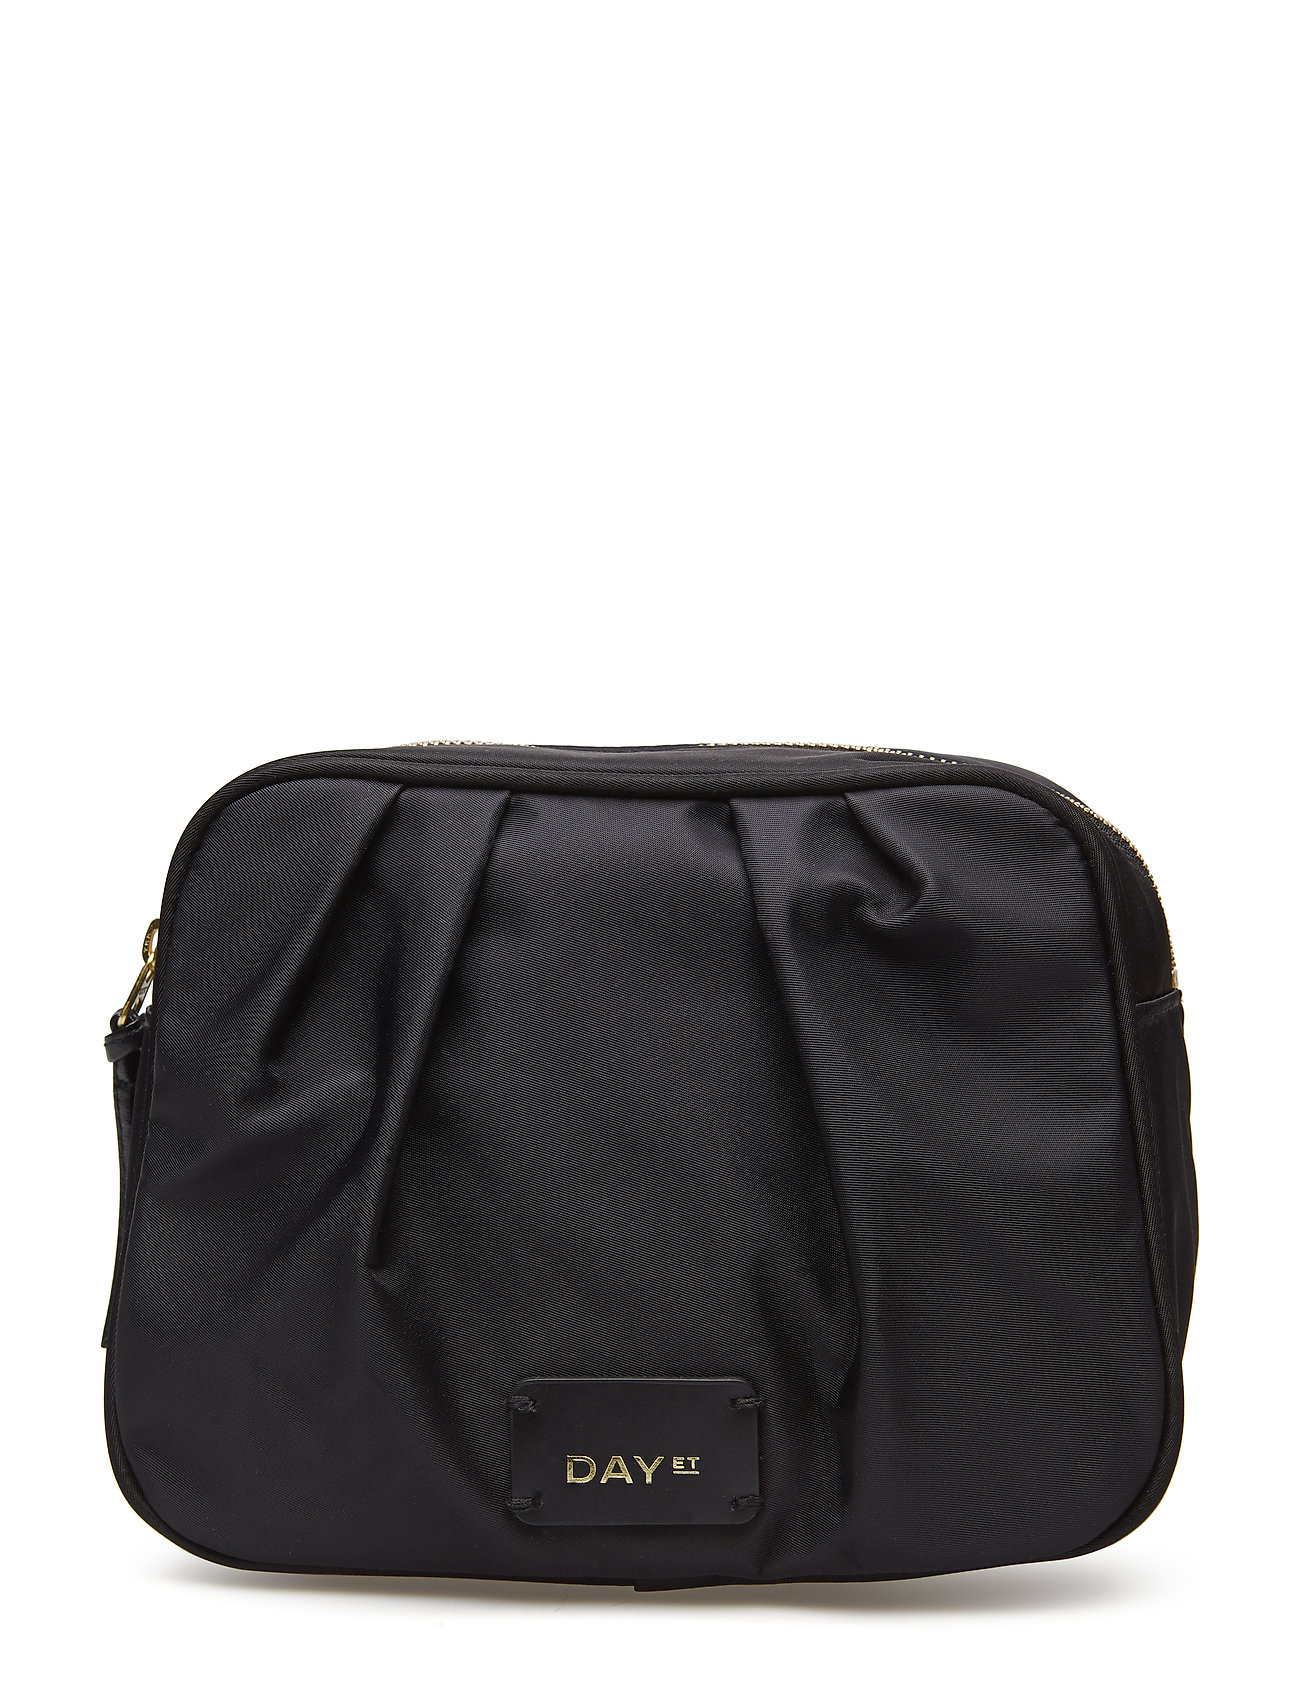 DAY et Day Exclusive Sachi Beauty - BLACK